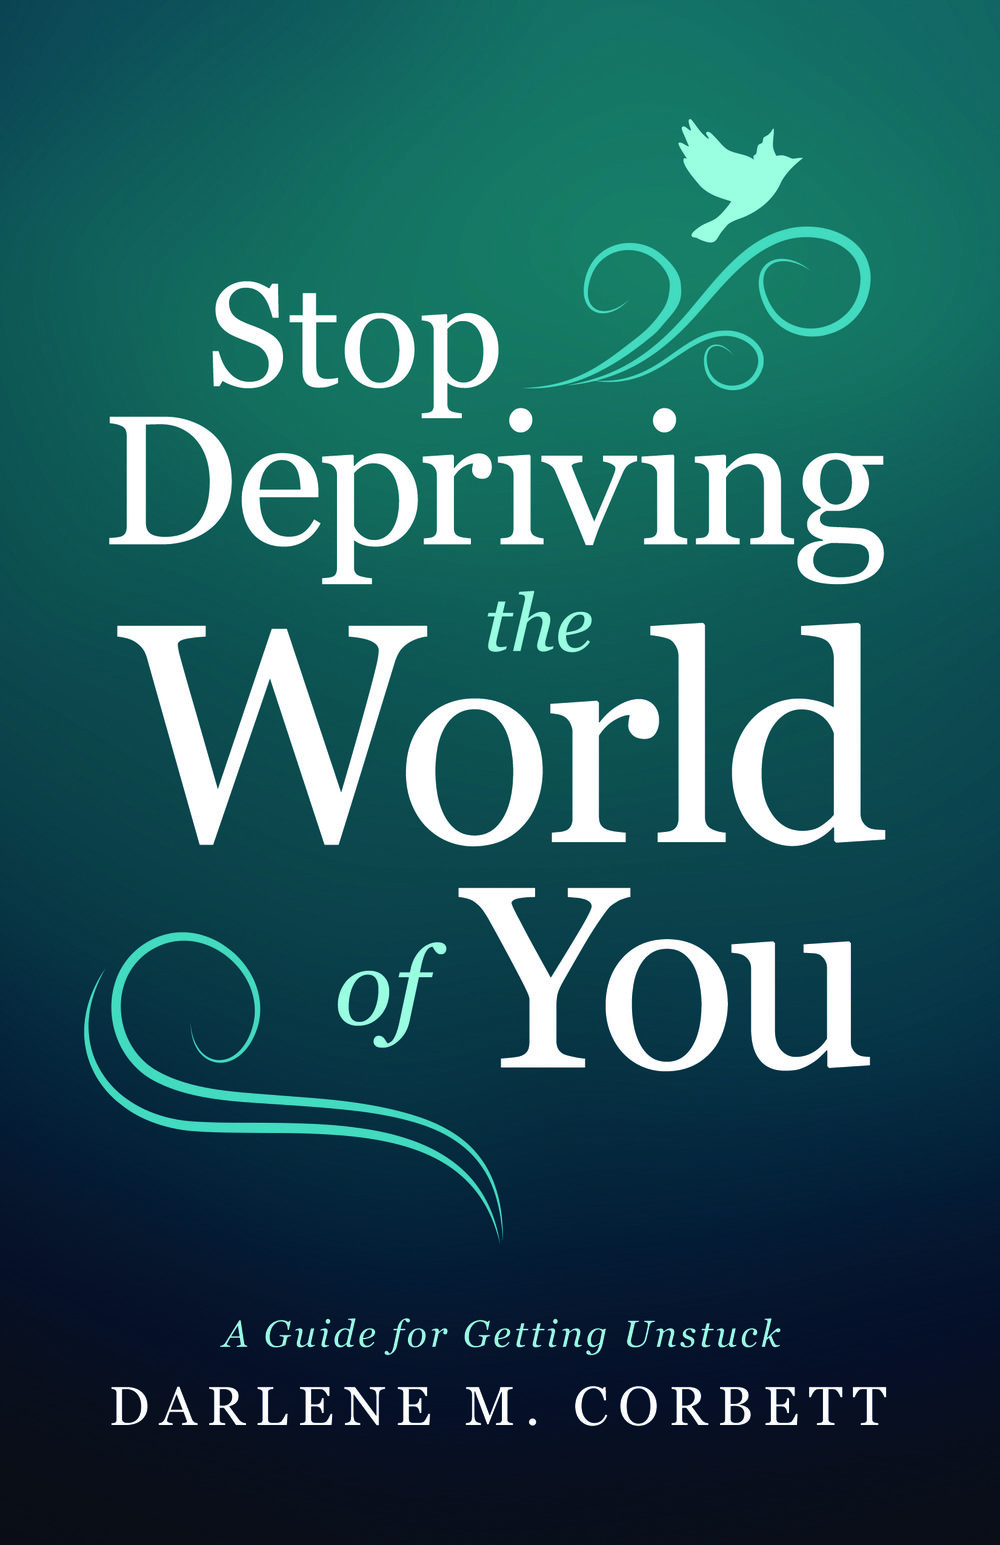 Stop Depriving the World of You - By Darlene M. Corbett